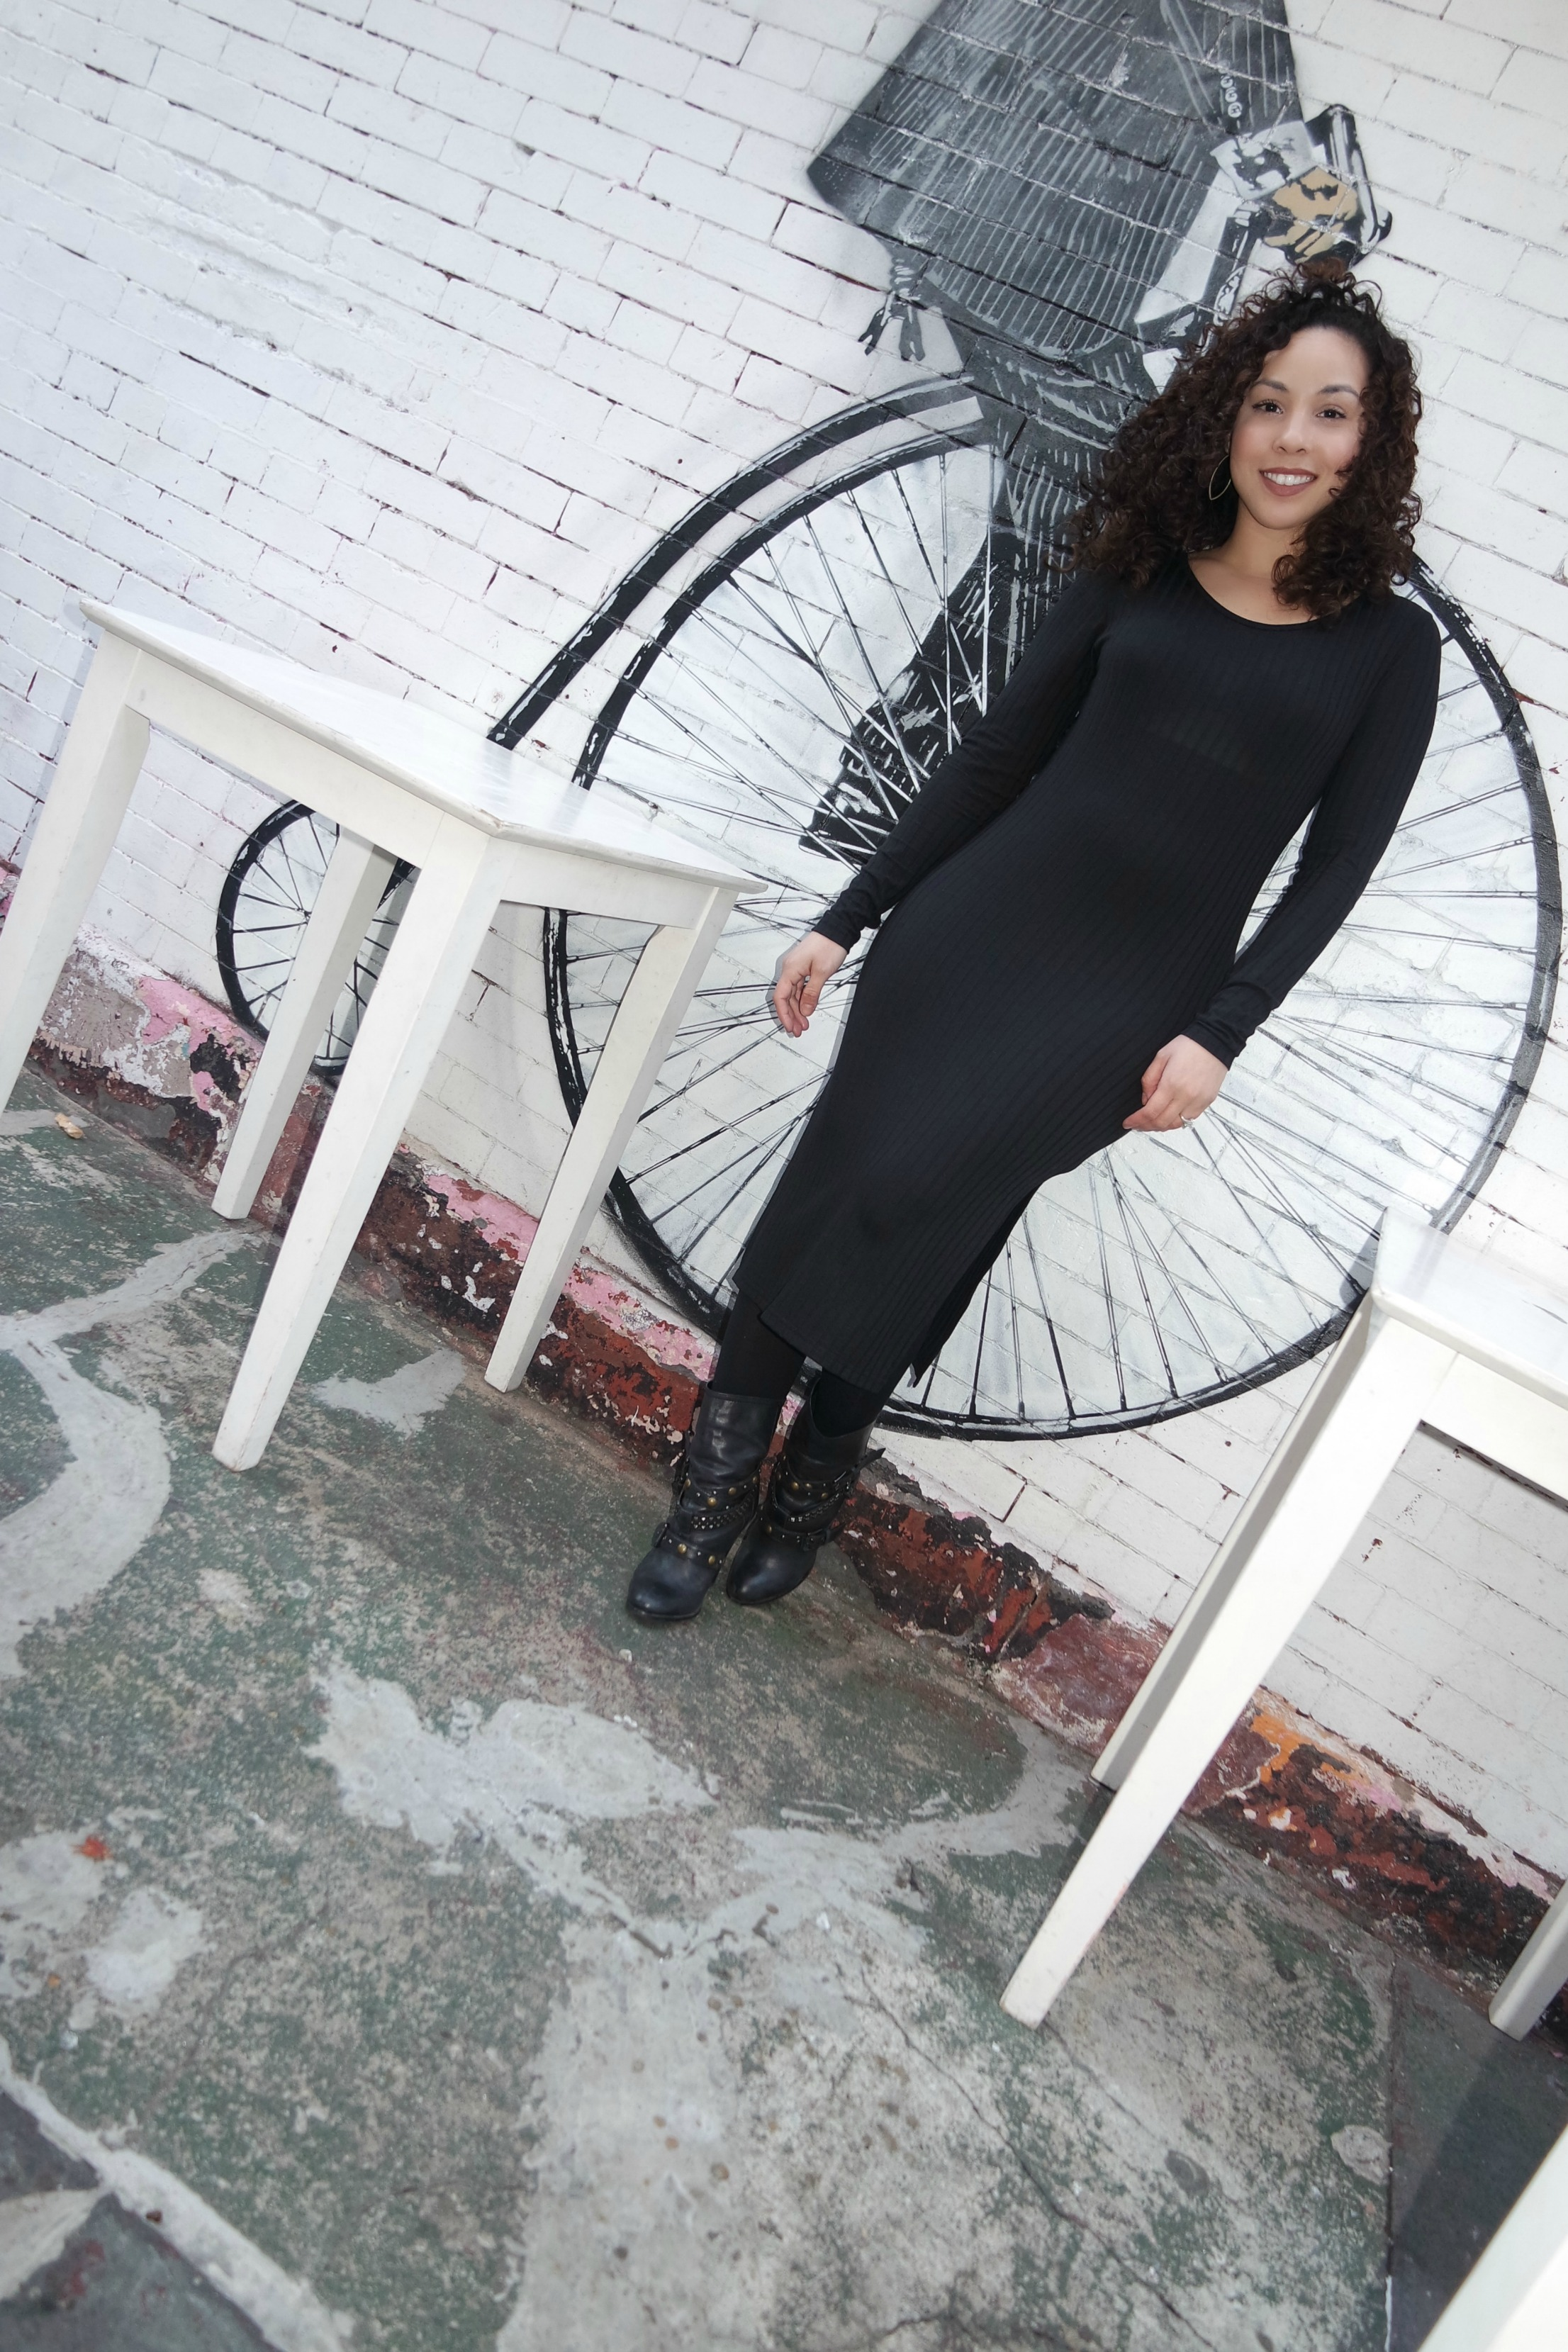 Black Ribbed Dress (similar  here ) | Aldo Studded Boots (super old; similar  here ) |  H&M Tights  |  UD Lipstick in  1993